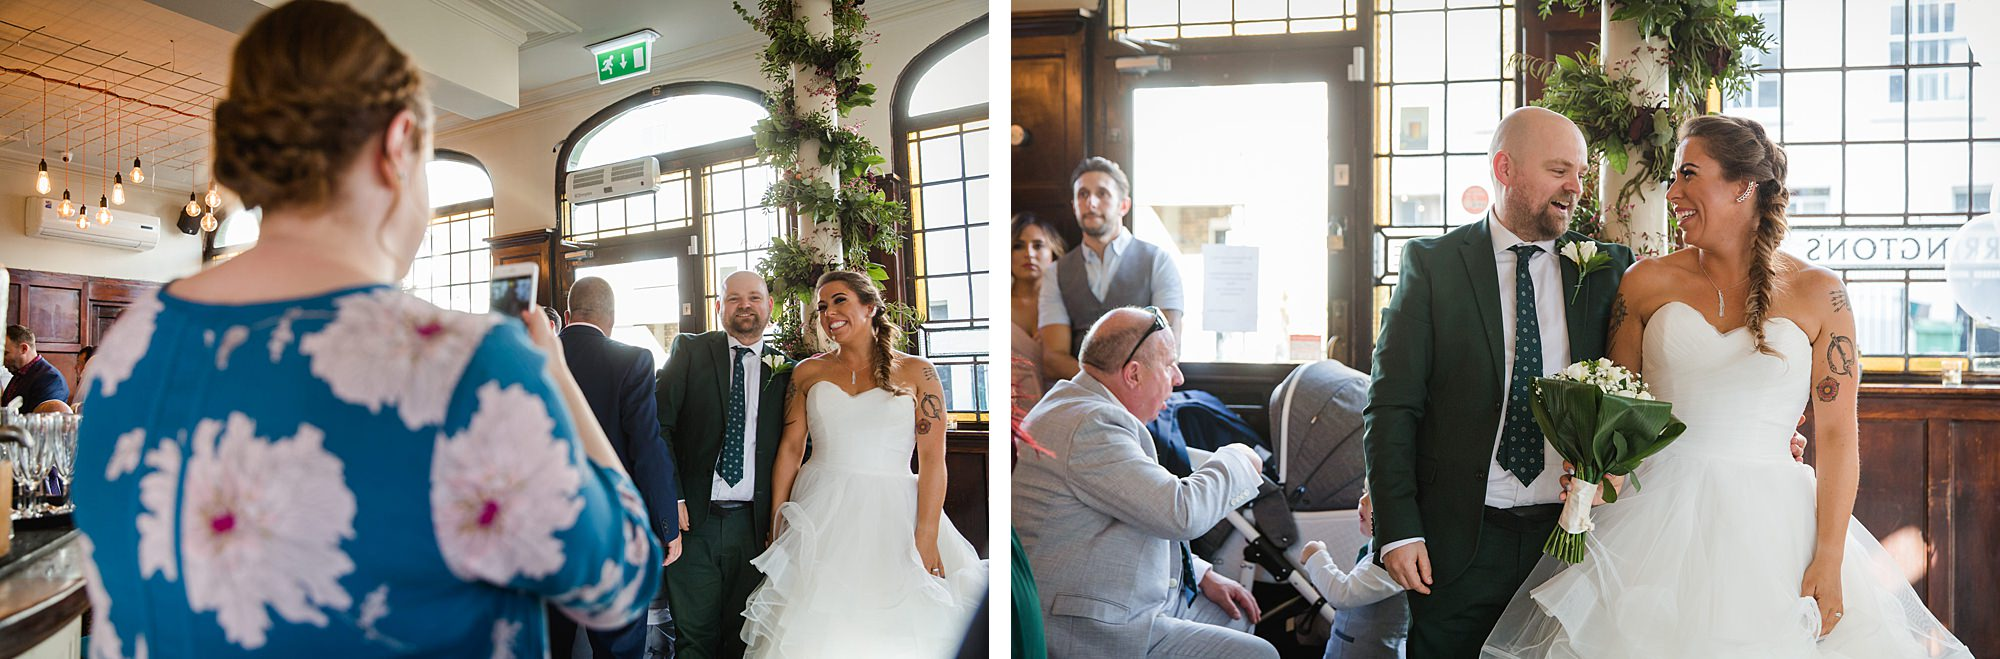 Prince albert camden wedding guests take pictures of couple